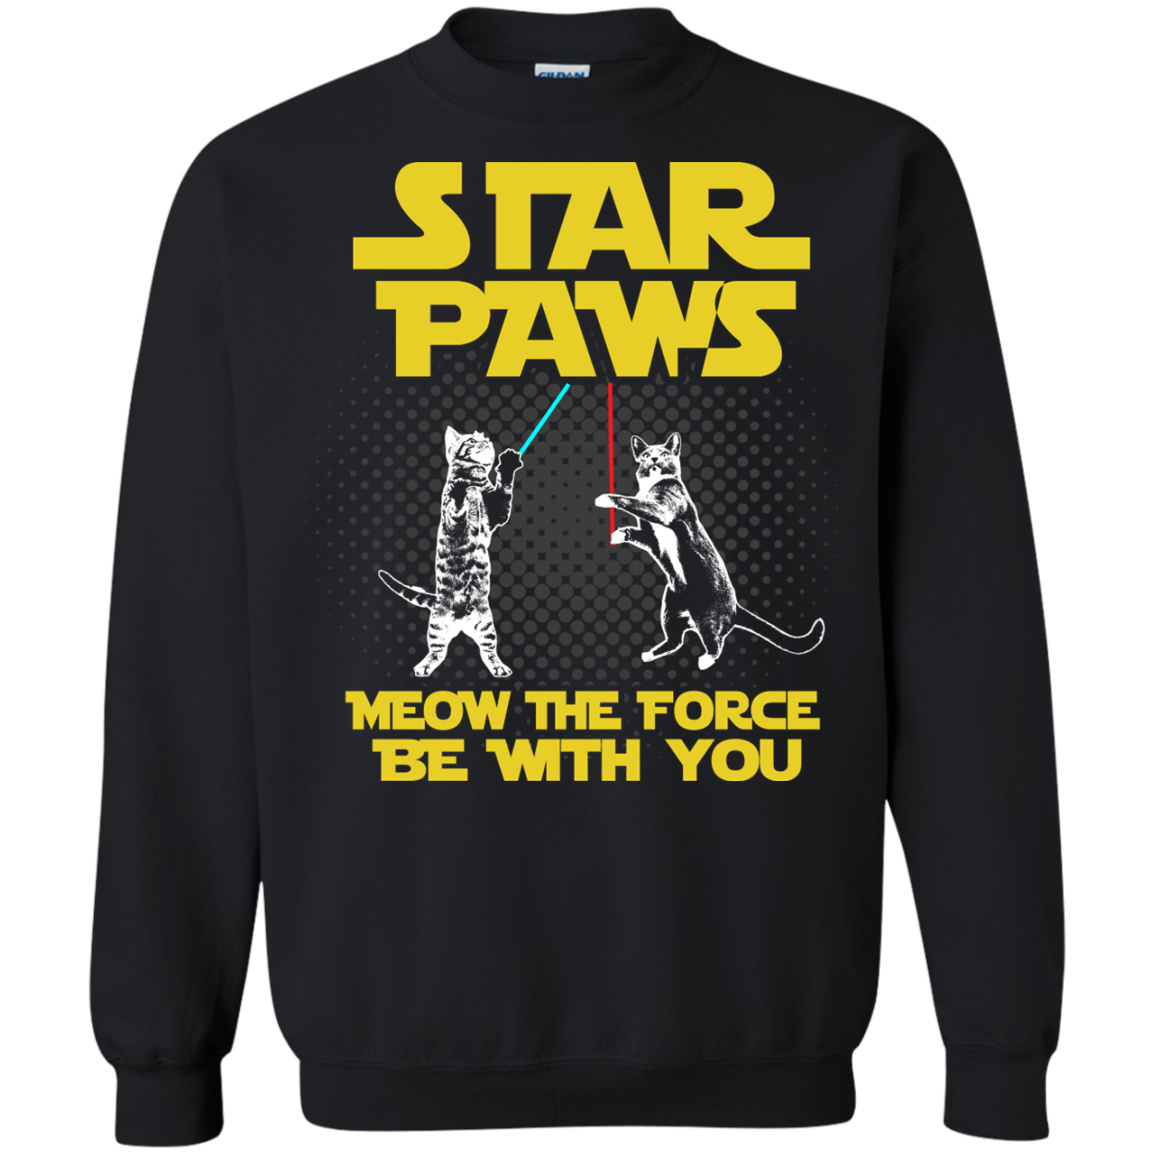 Star Paws Meow the force be with you Sweatshirt